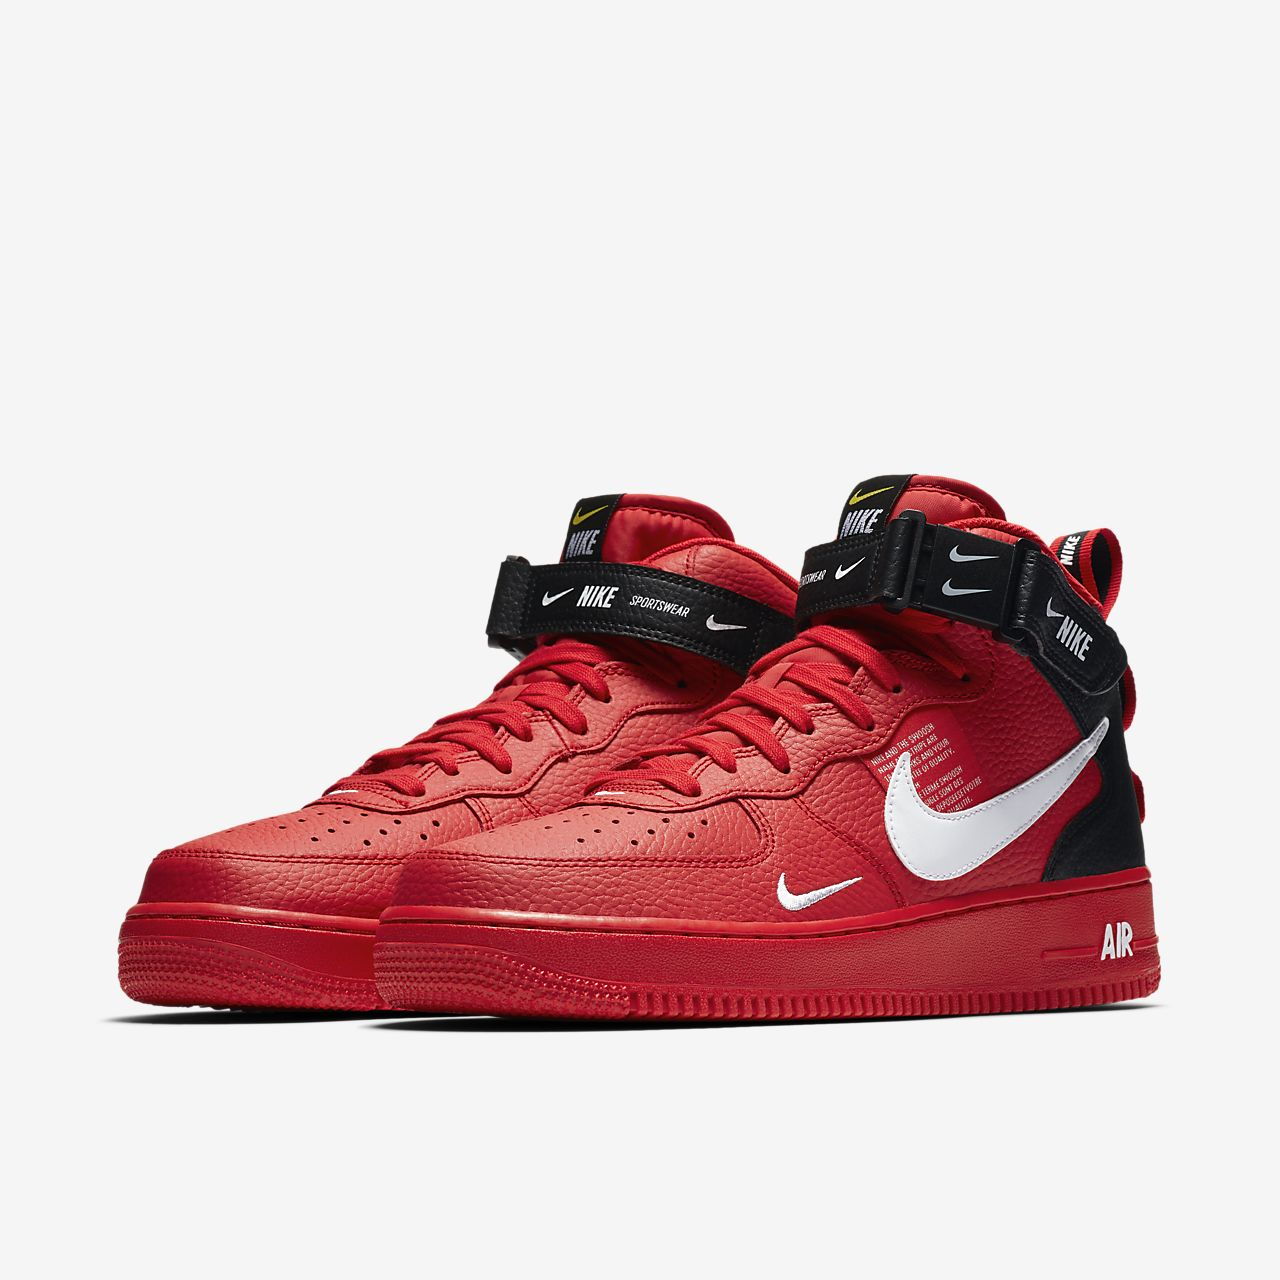 new arrivals efd5c 03557 ... Nike Air Force 1 07 Mid LV8 Mens Shoe